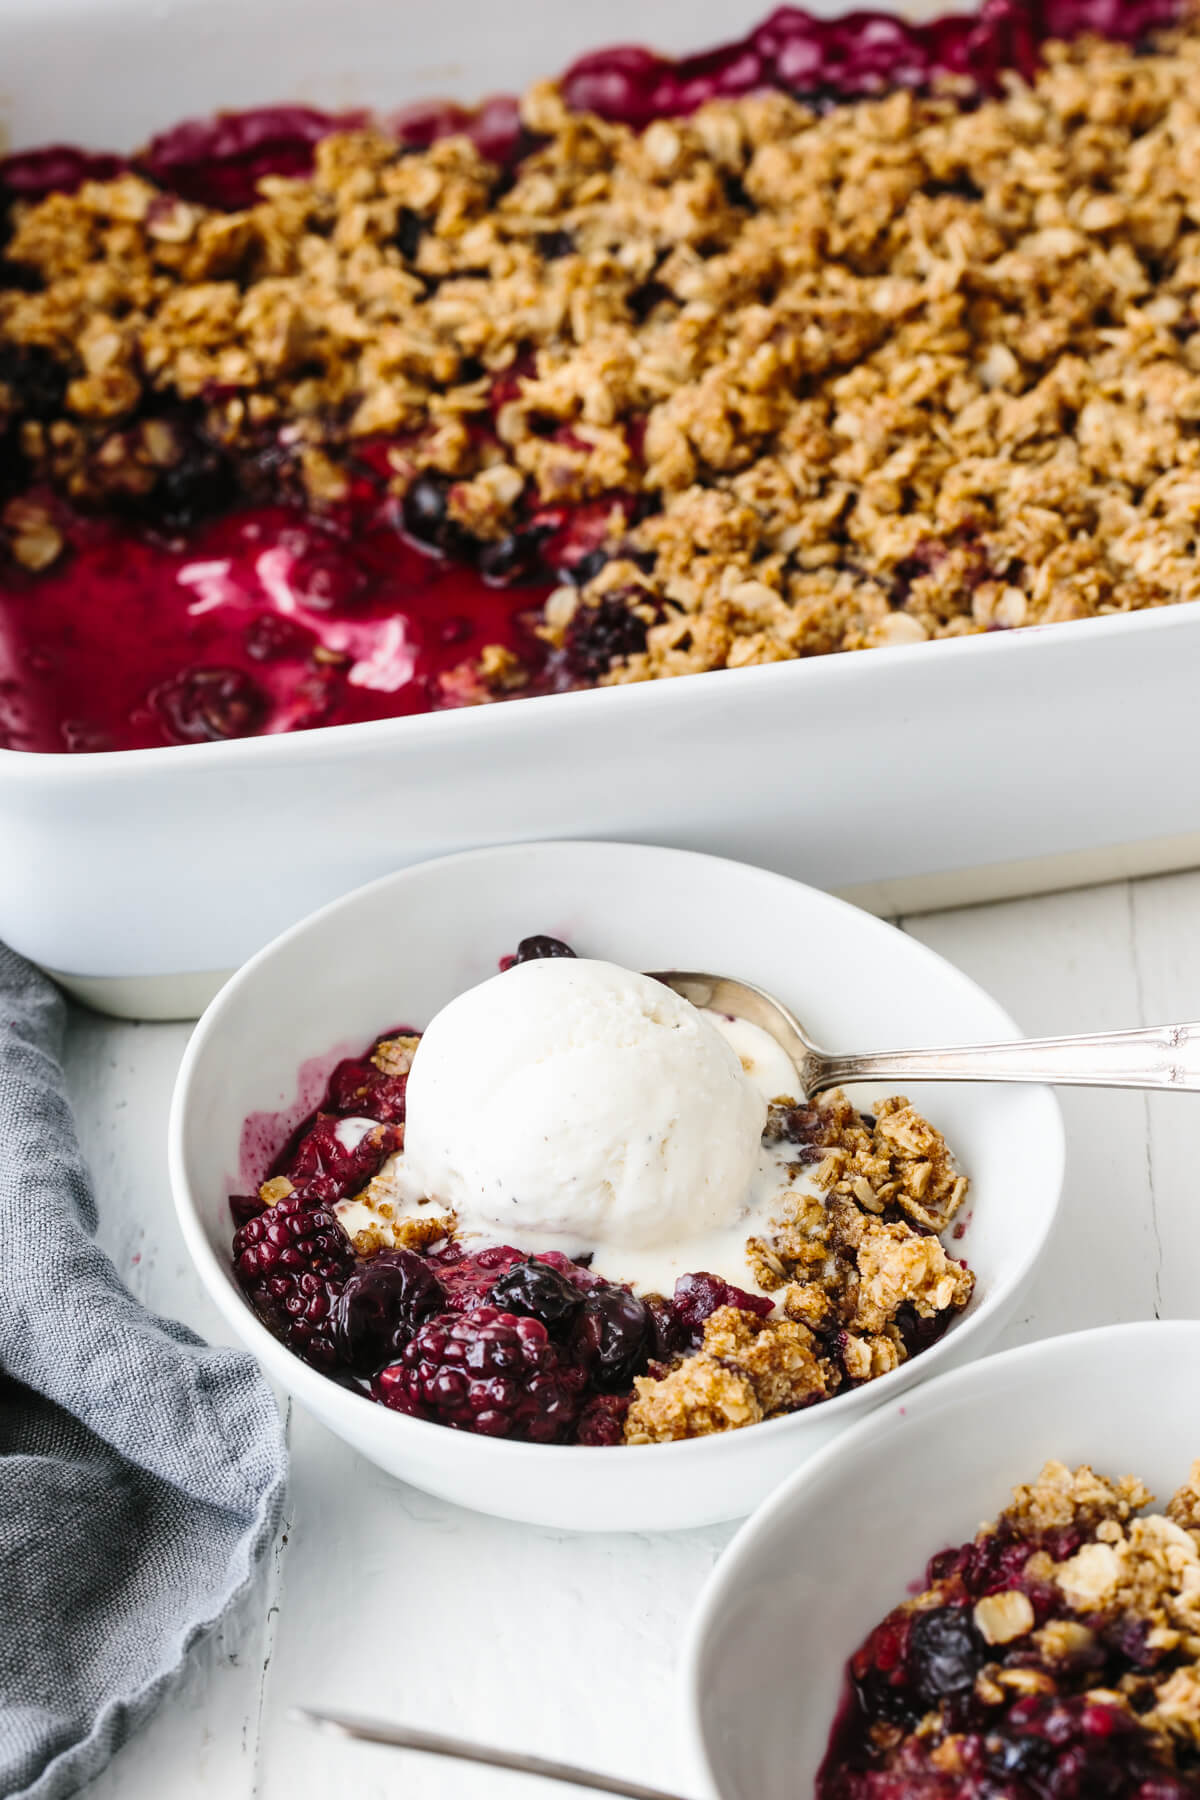 A bowl of berry crisp topped with ice cream.